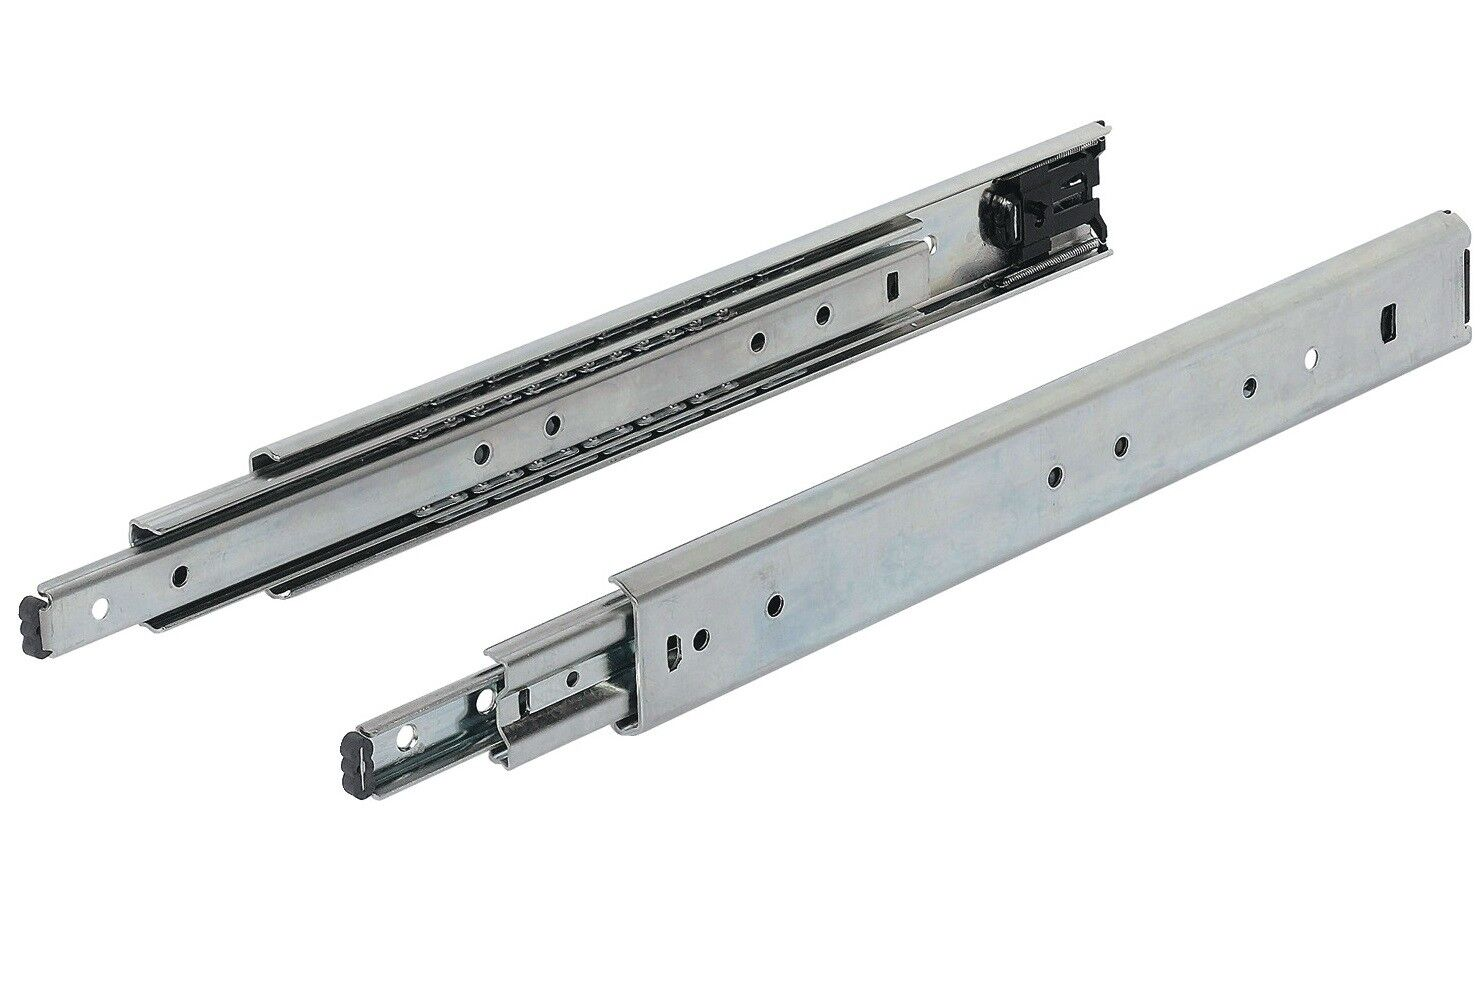 Drawer rail Accuride 5321 SC Full extension Ball guide Drawer pull-out